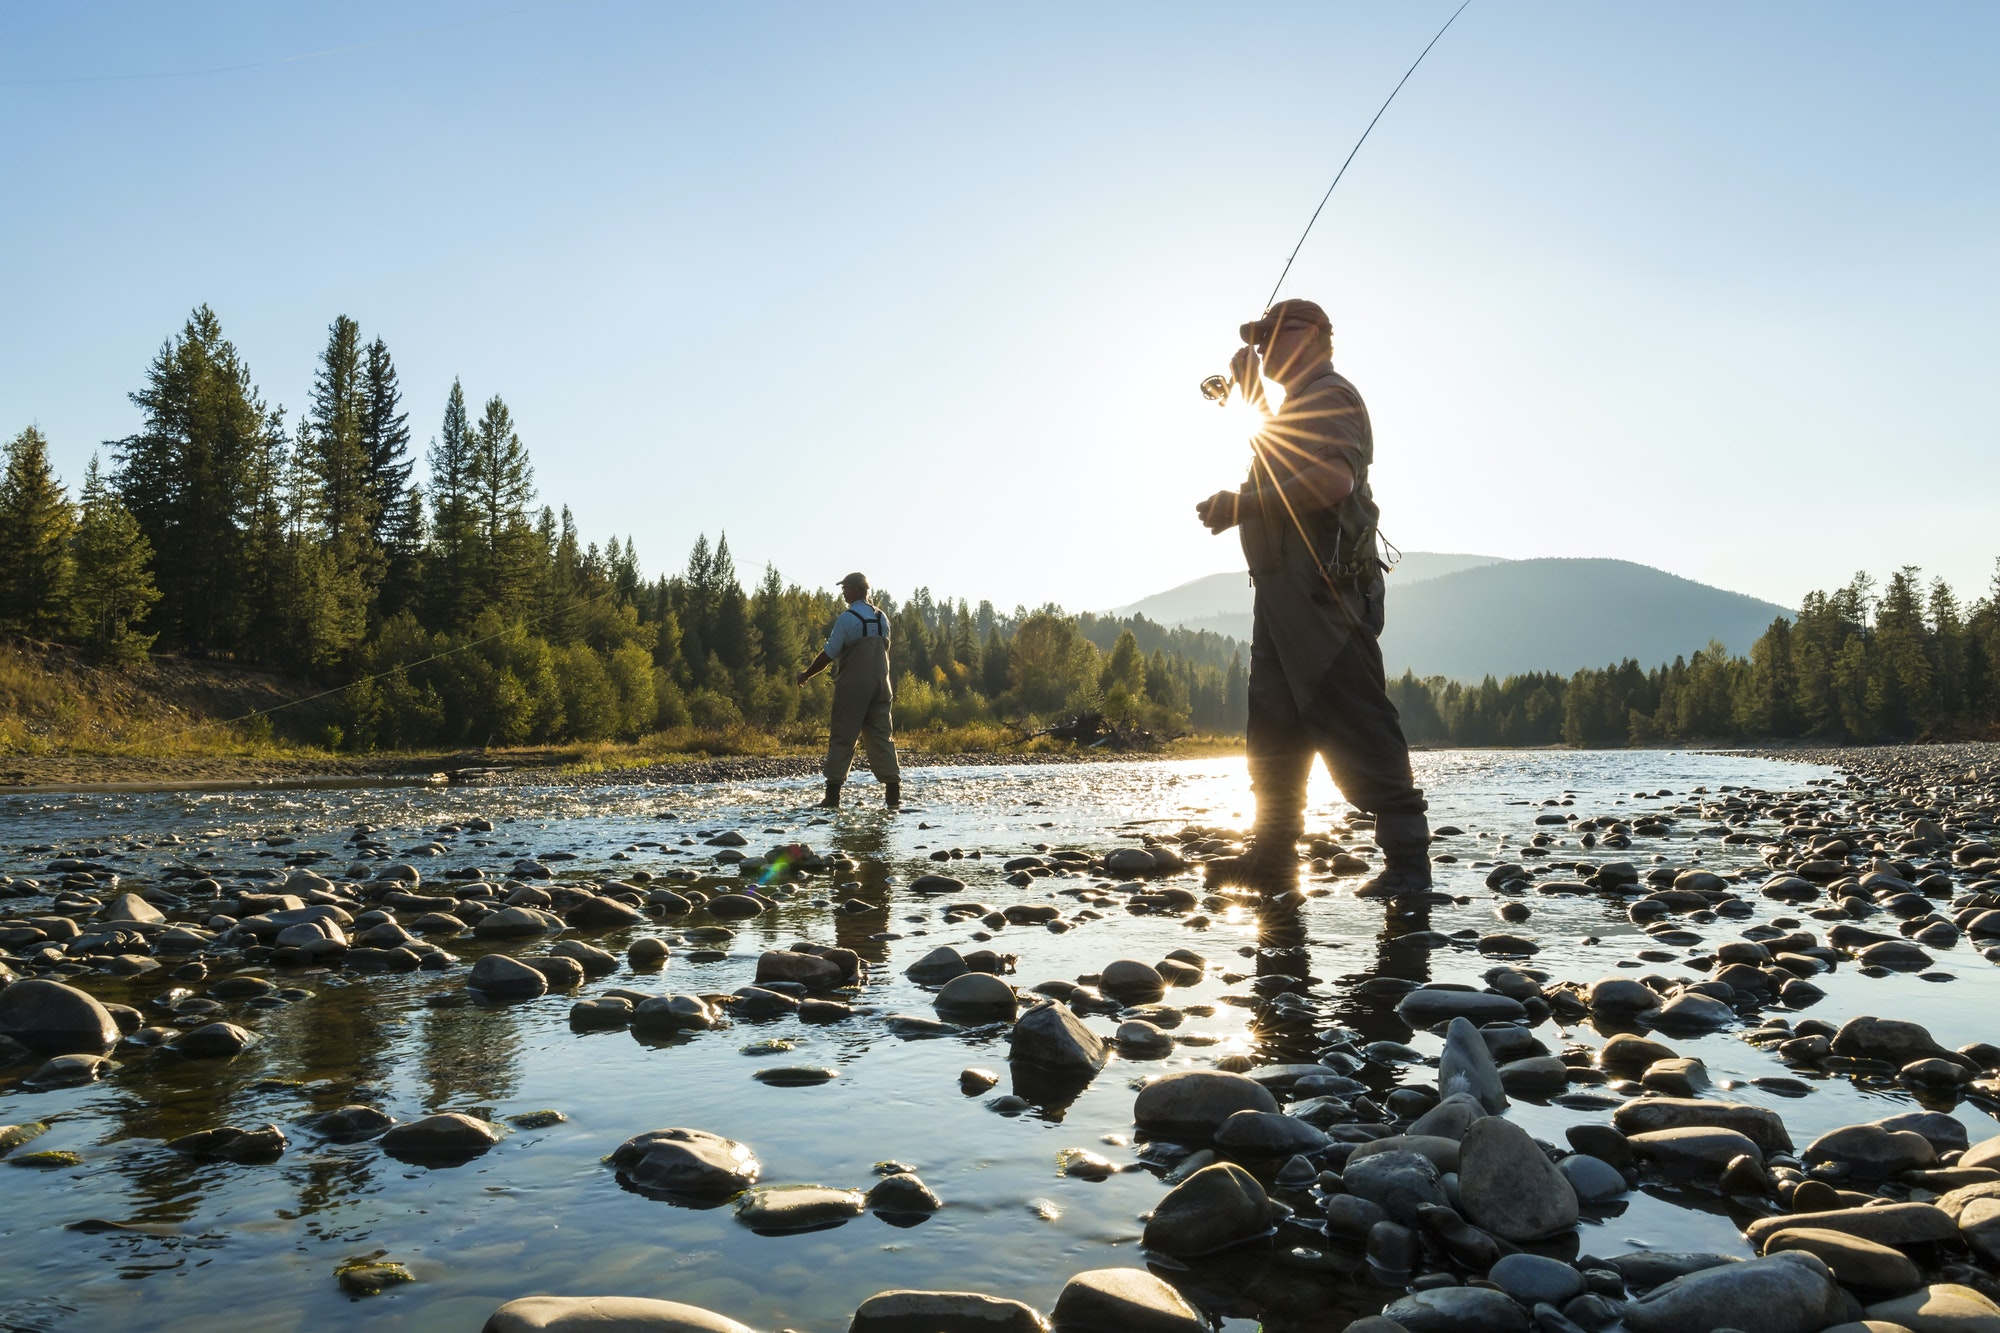 Two fly fisherman standing in rocky riverbed, casting their fishing rods.